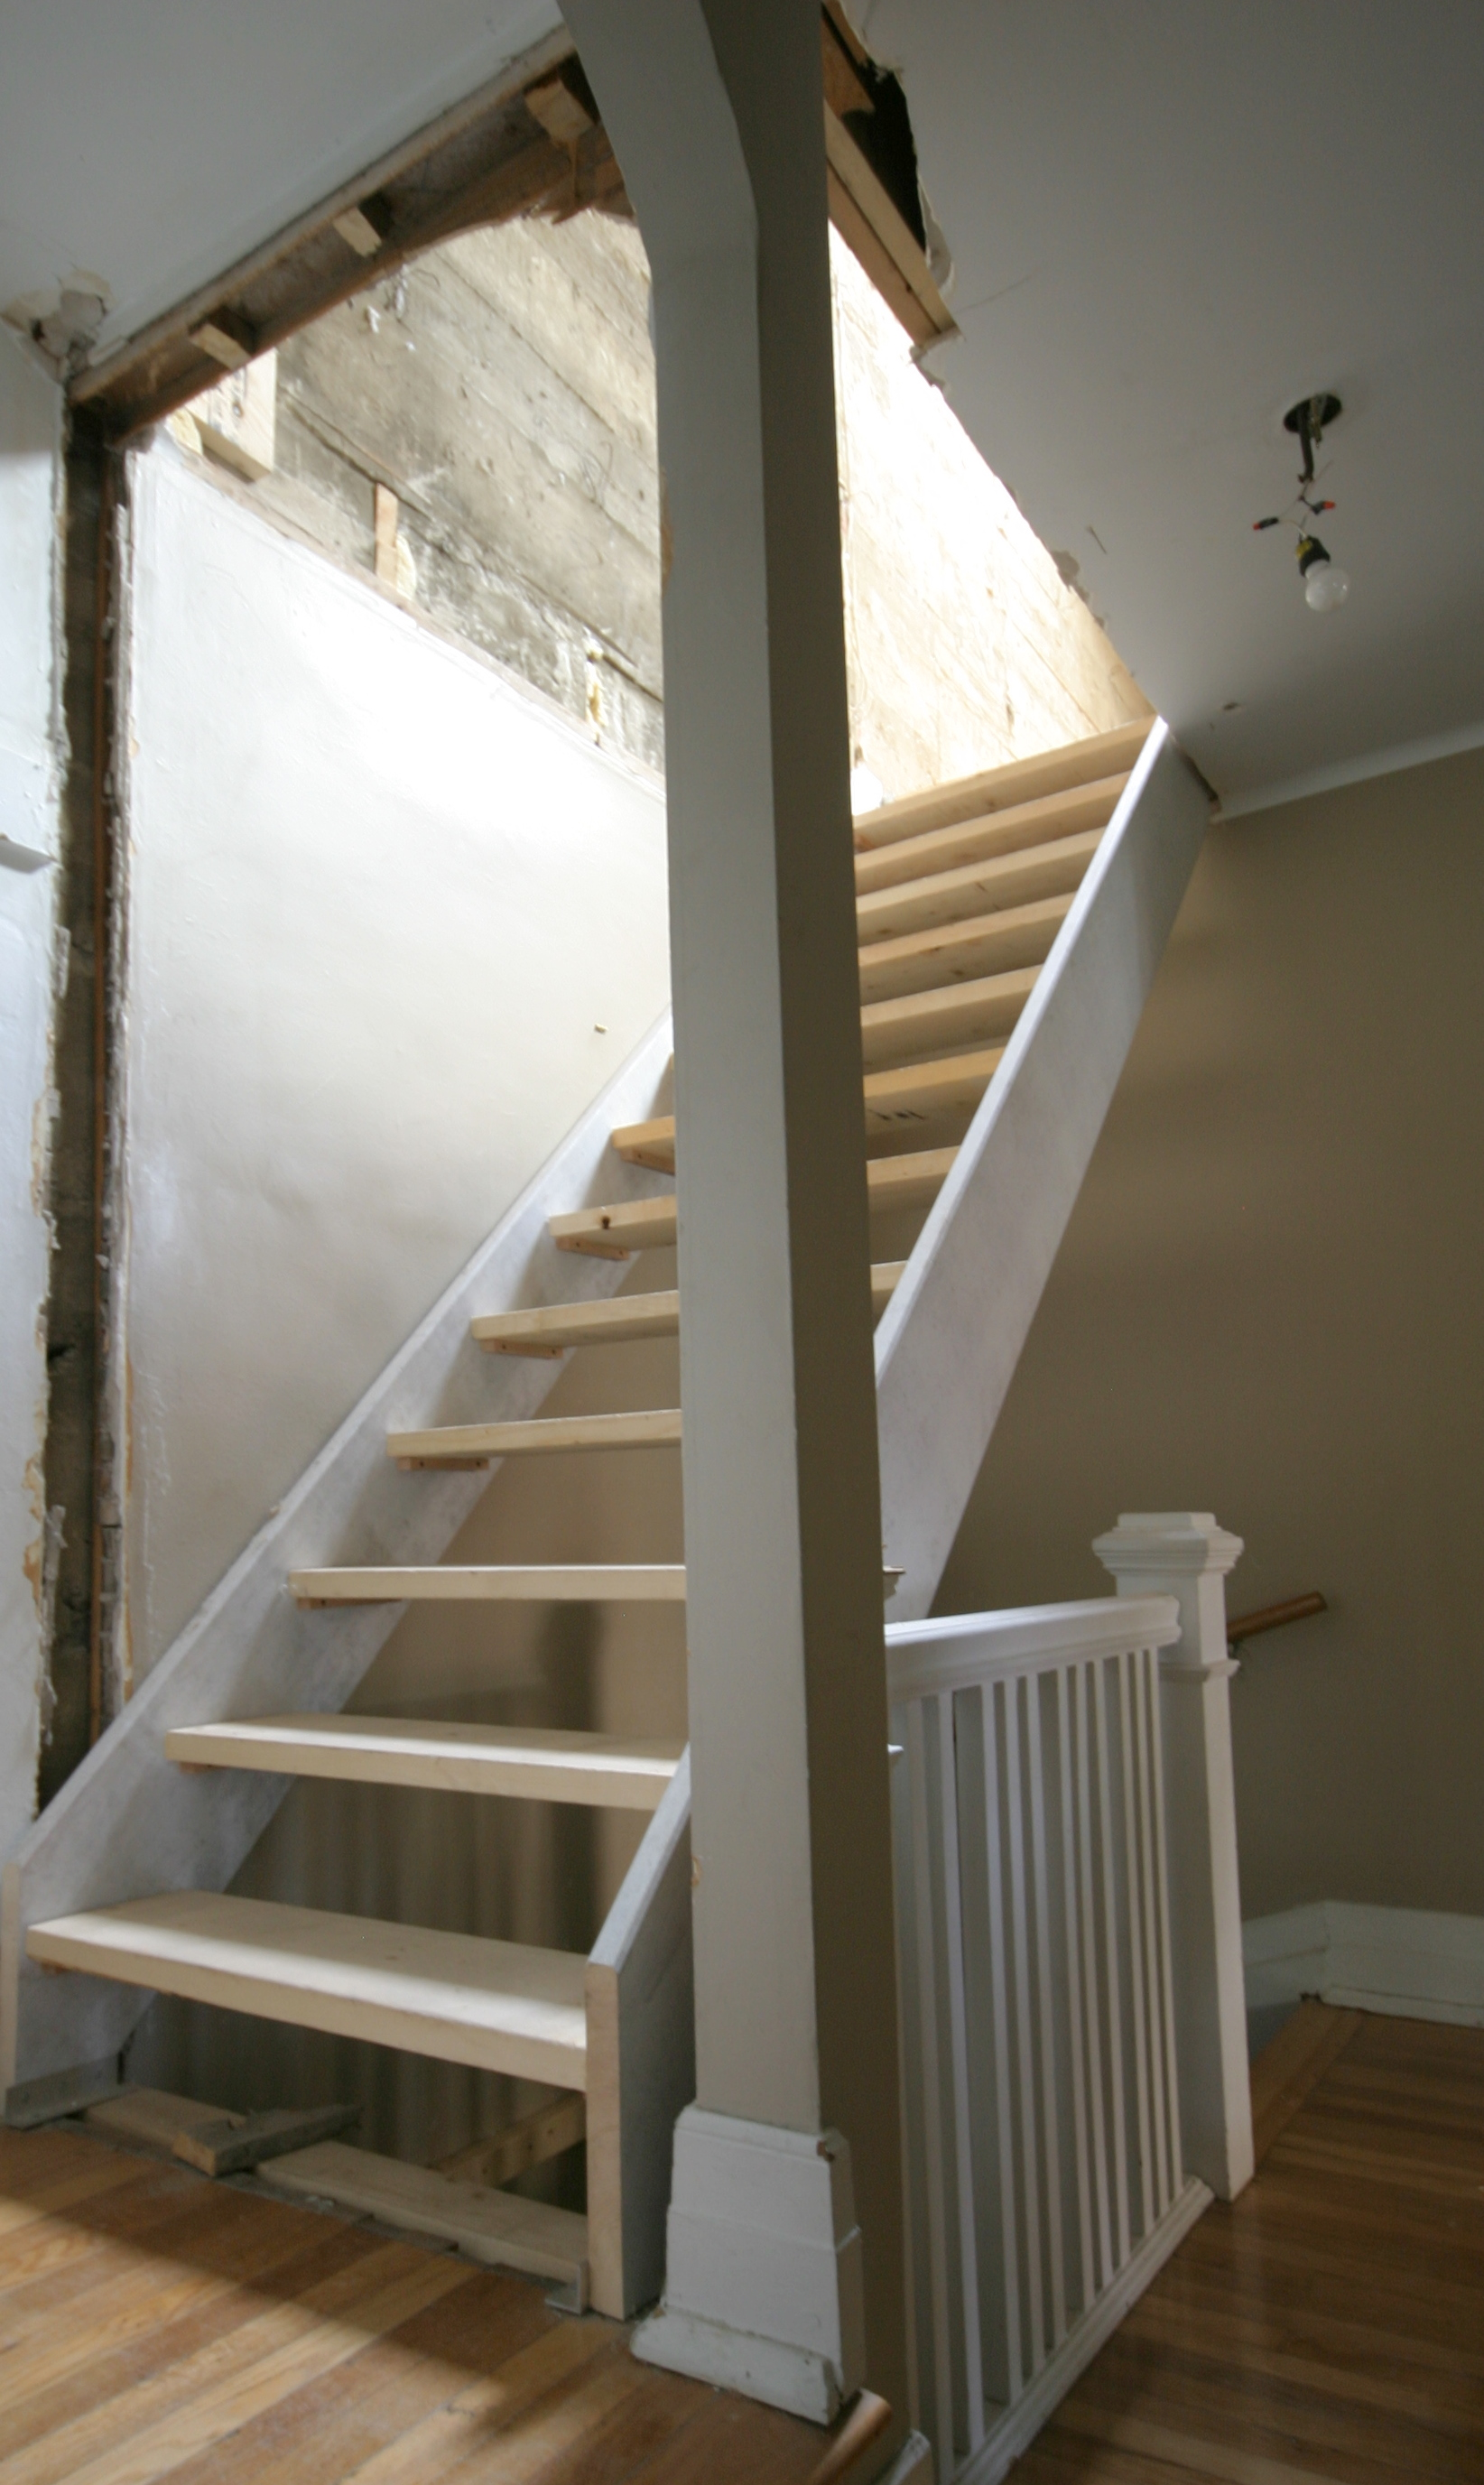 temporary stairs to attic renovation in progress